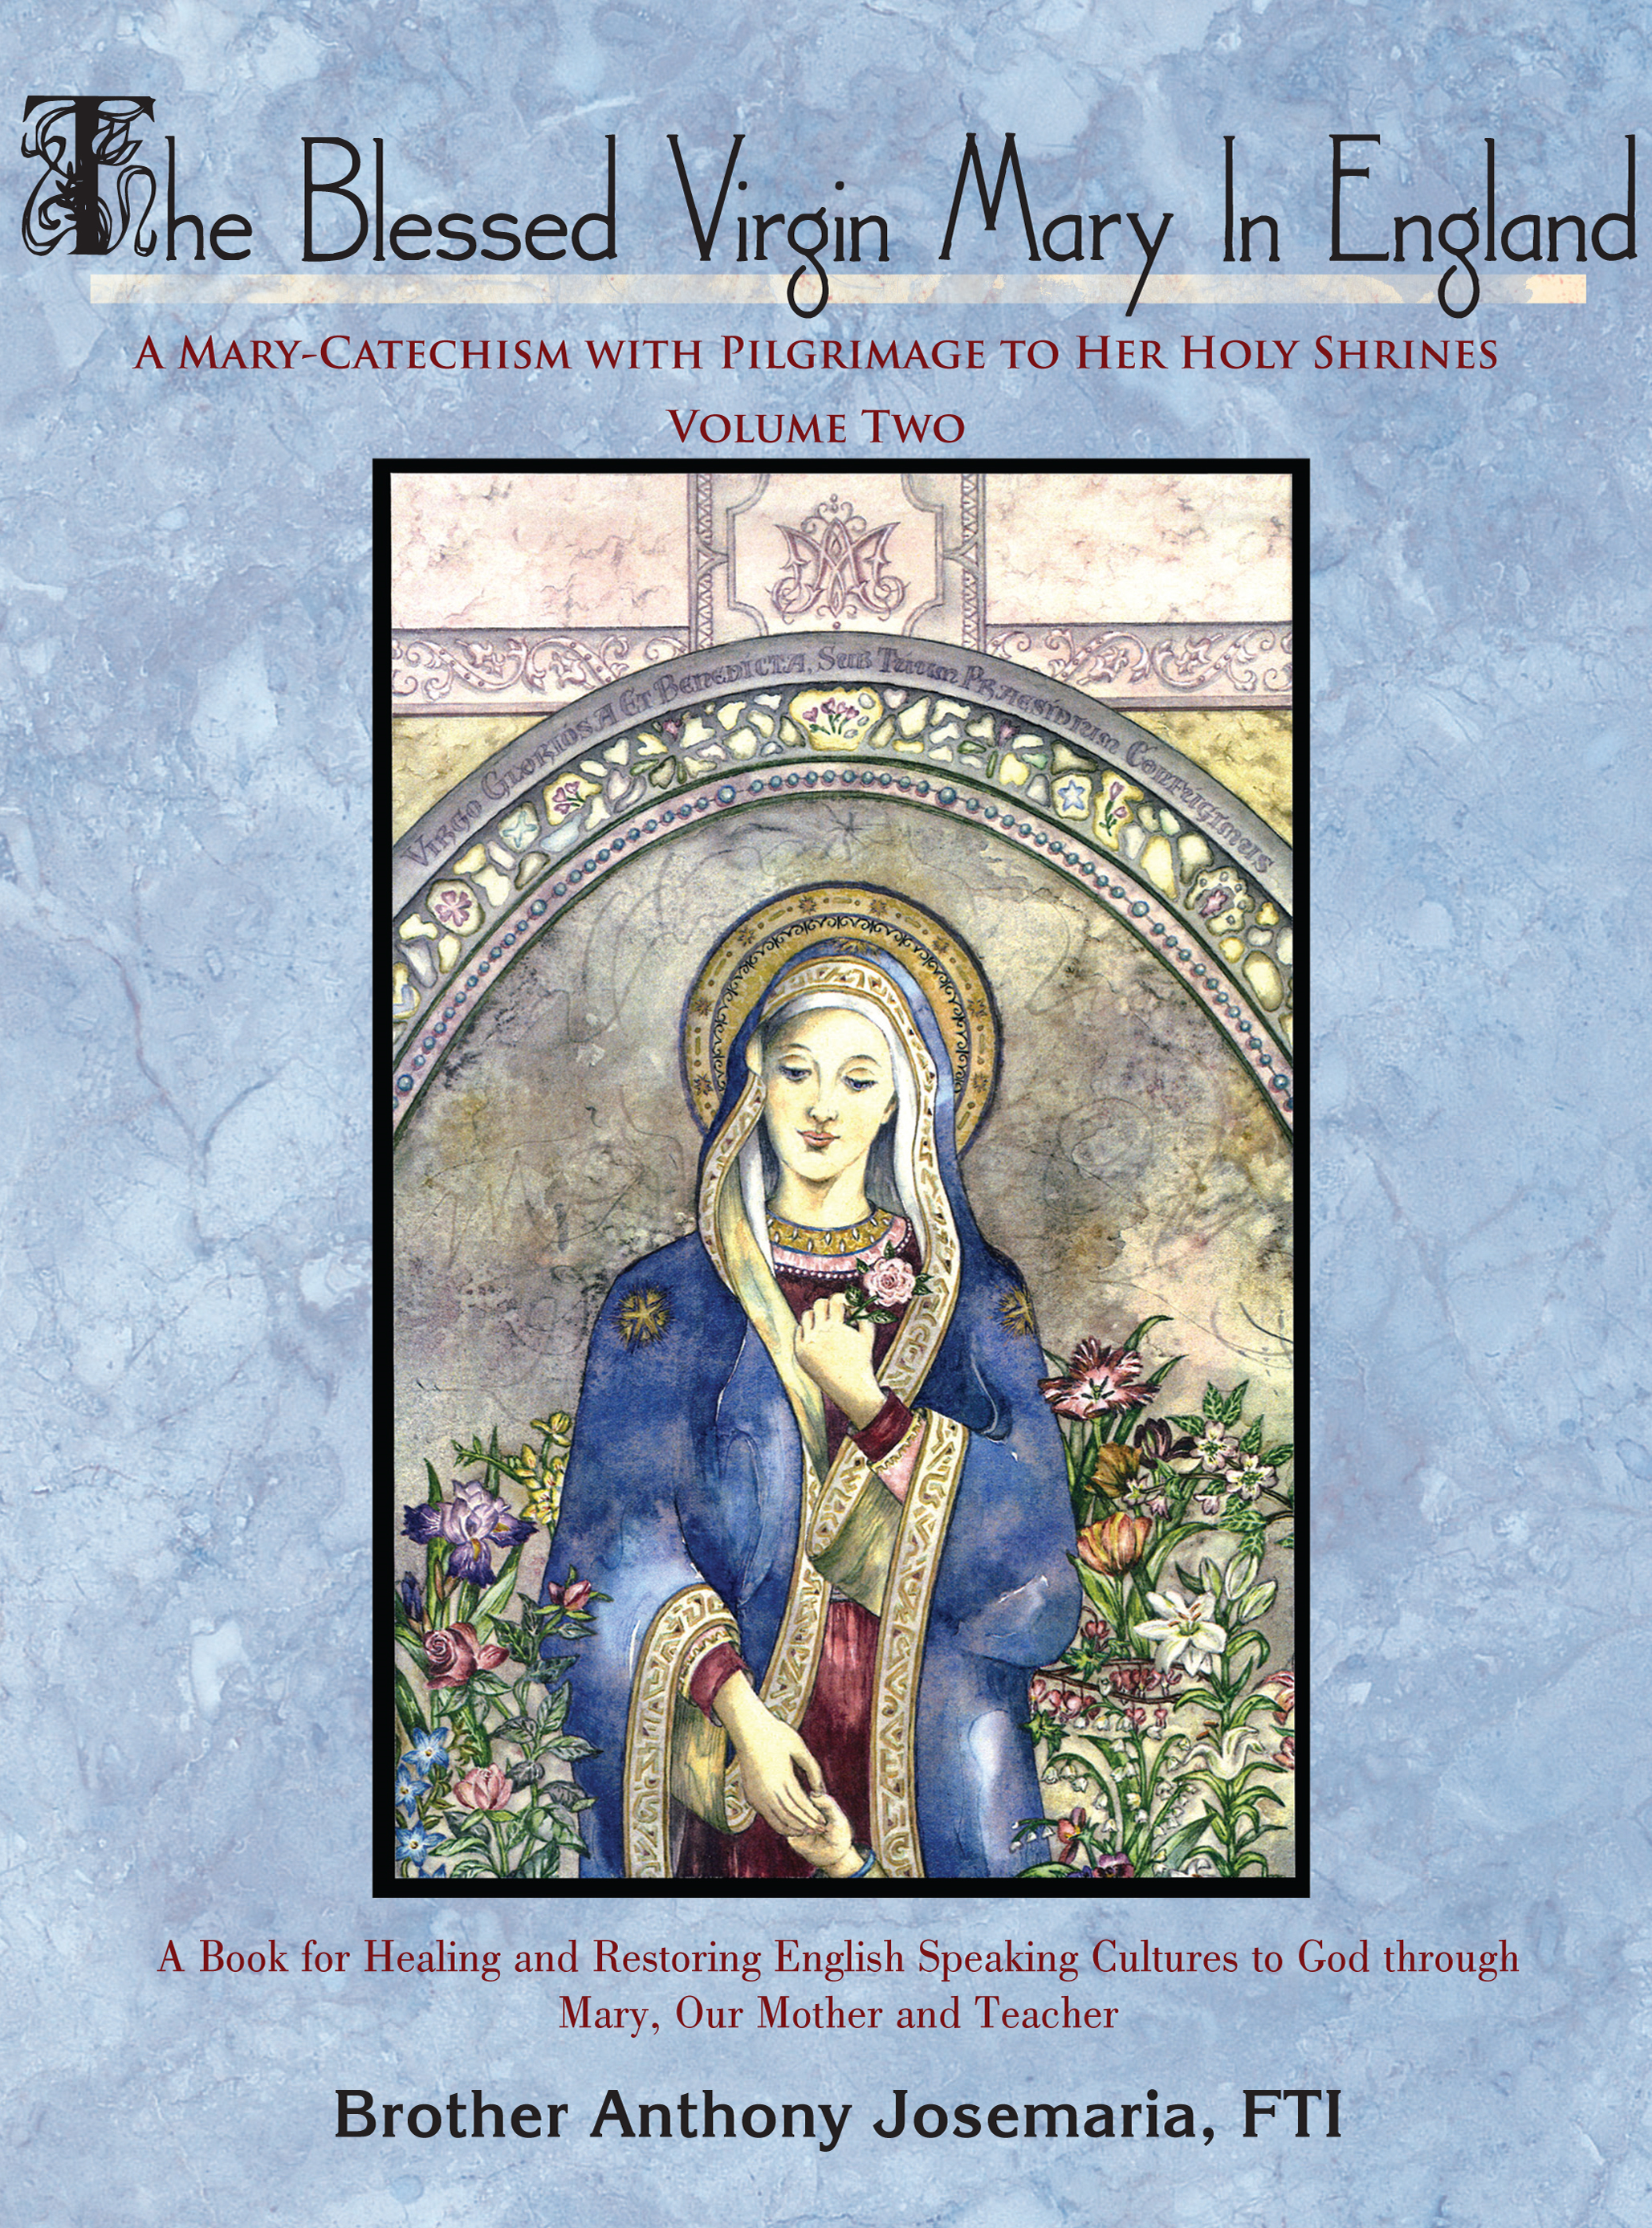 The Blessed Virgin Mary In England: Vol. II By: Brother Anthony Josemaria, FTI